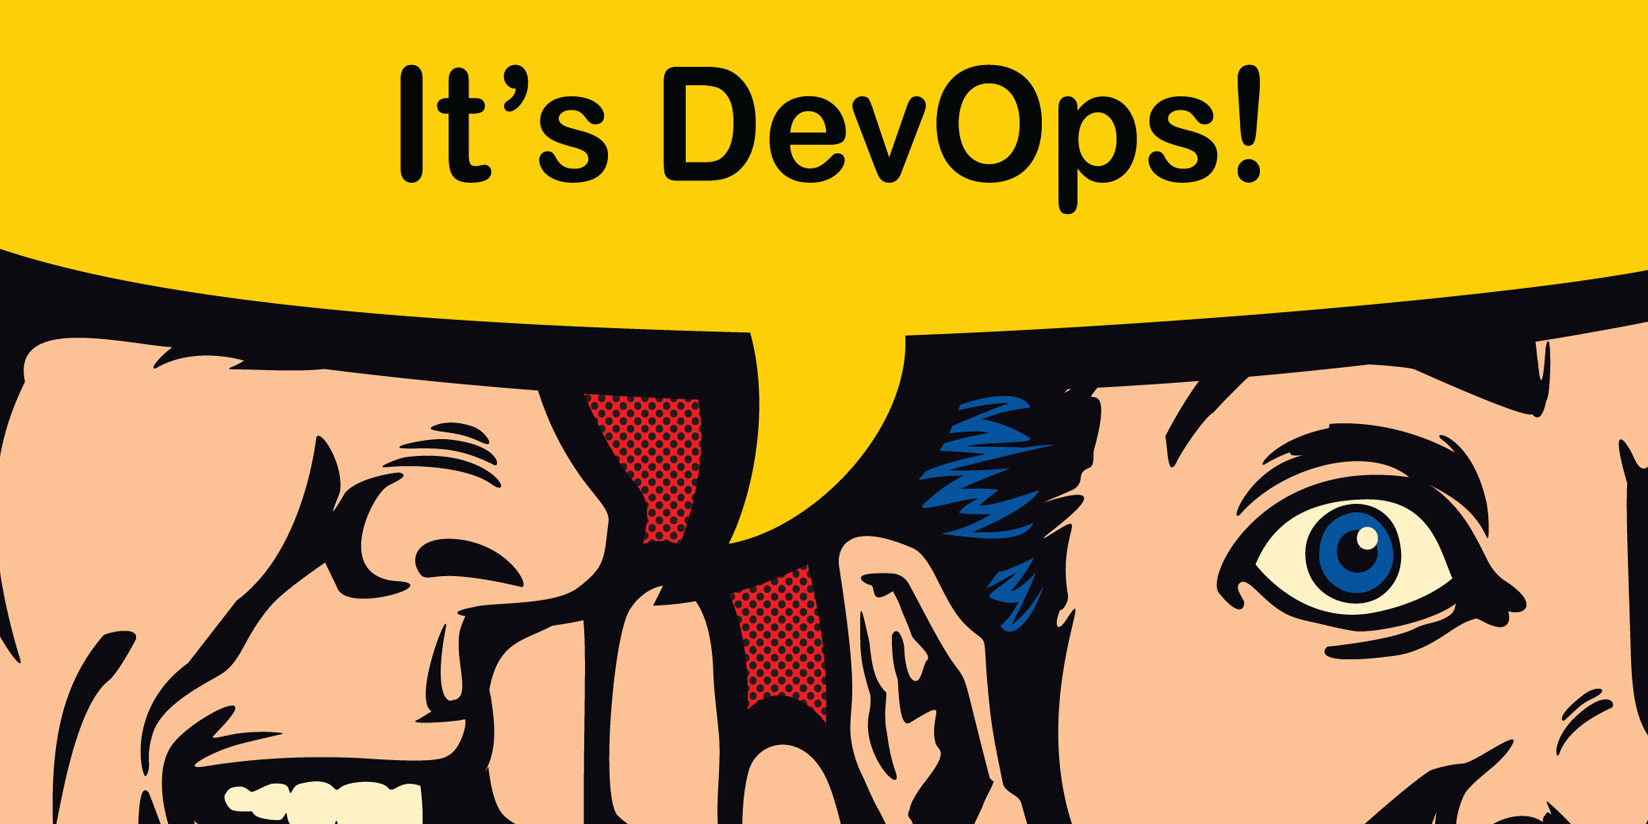 The definition of DevOps - You can't just rename your IT Ops team and call it DevOps